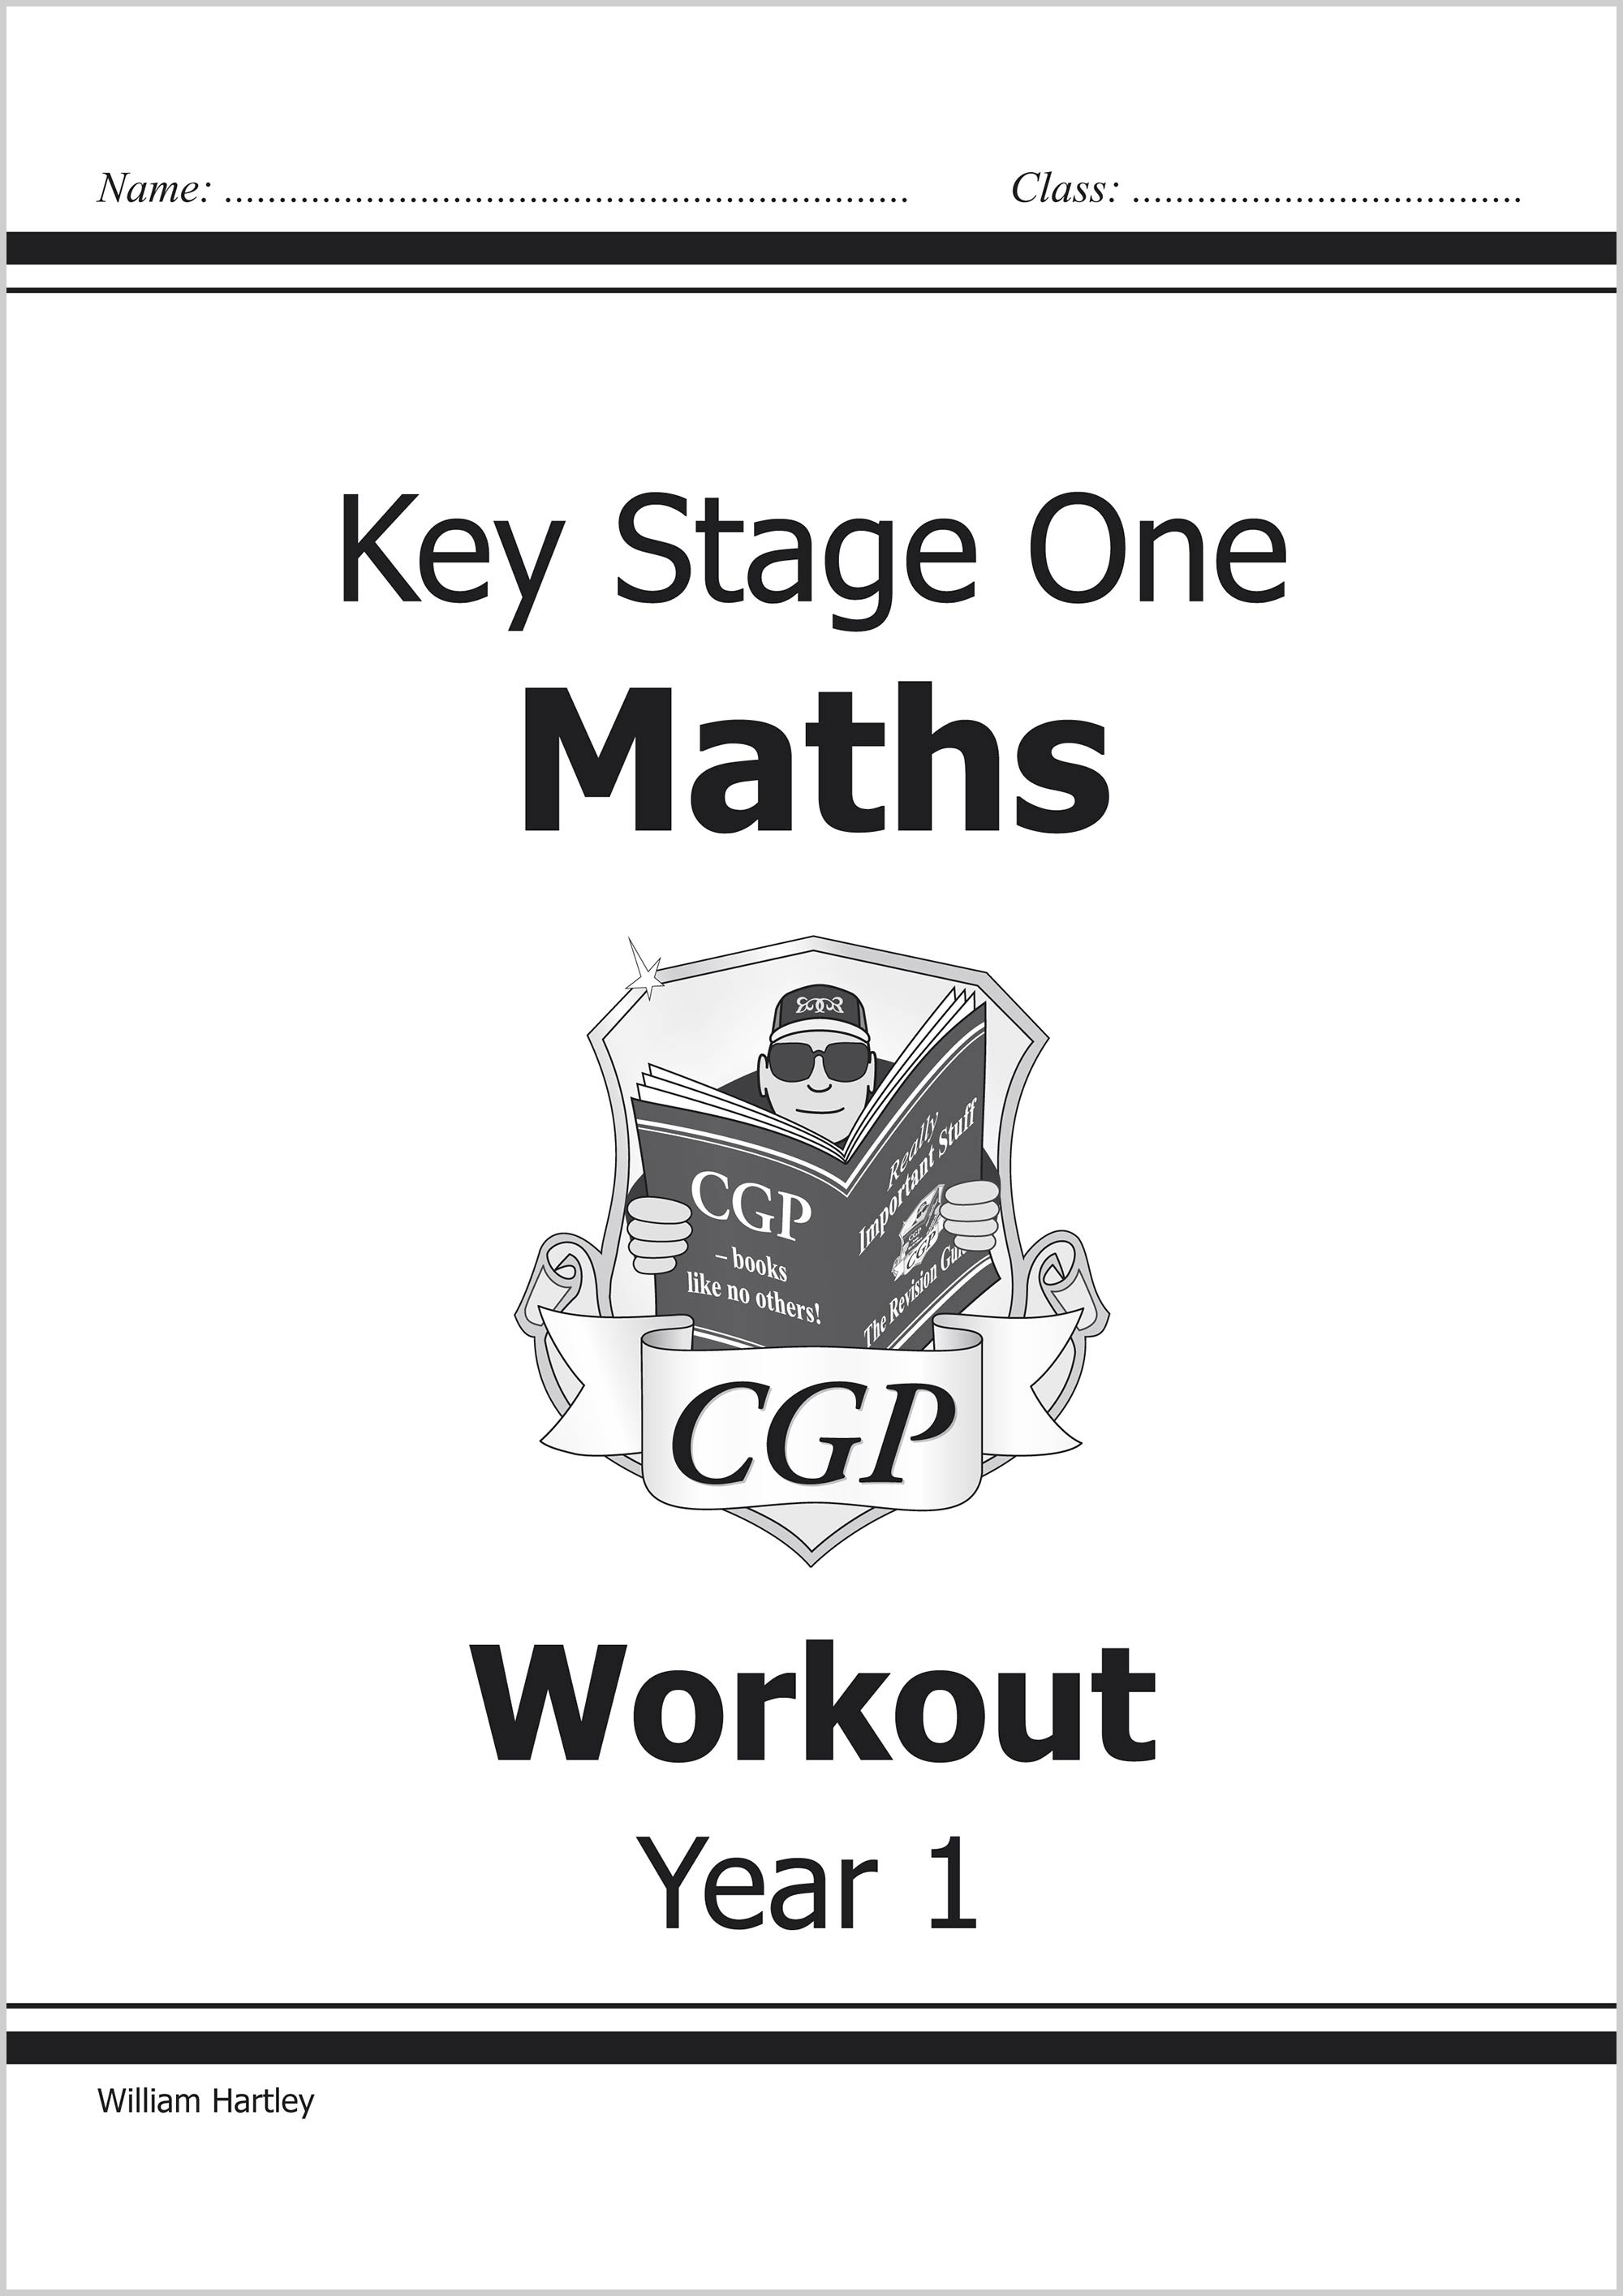 M1W11 - KS1 Maths Workout - Year 1